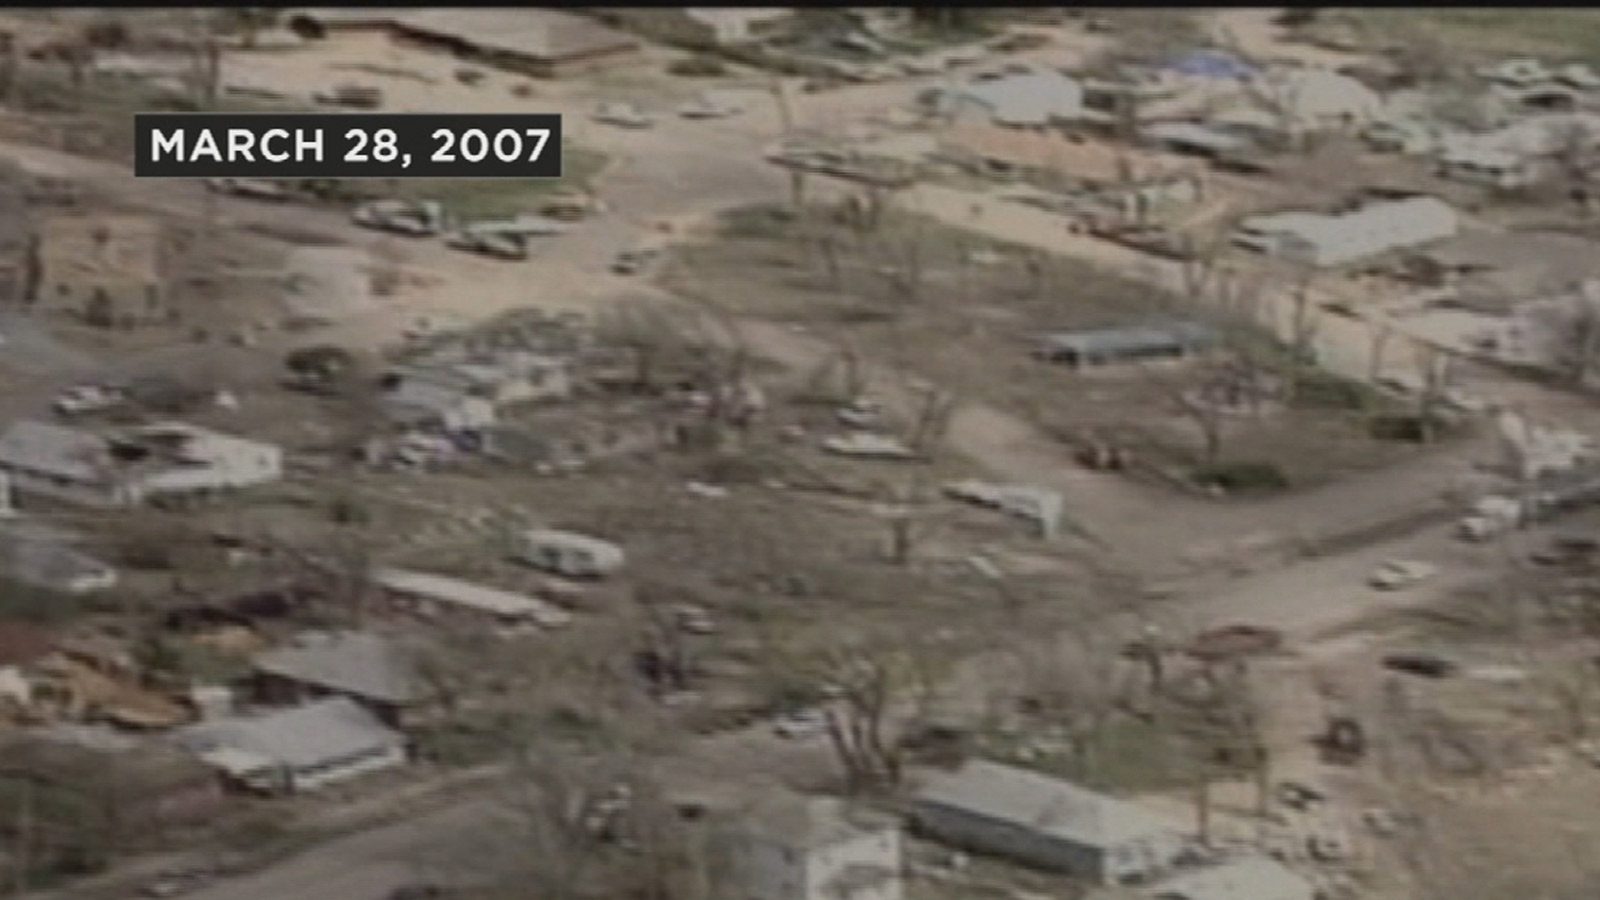 A view from the air after an EF-3 tornado heavily damaged the small town of Holly, Colo. on March 28, 2007. (credit: CBS)